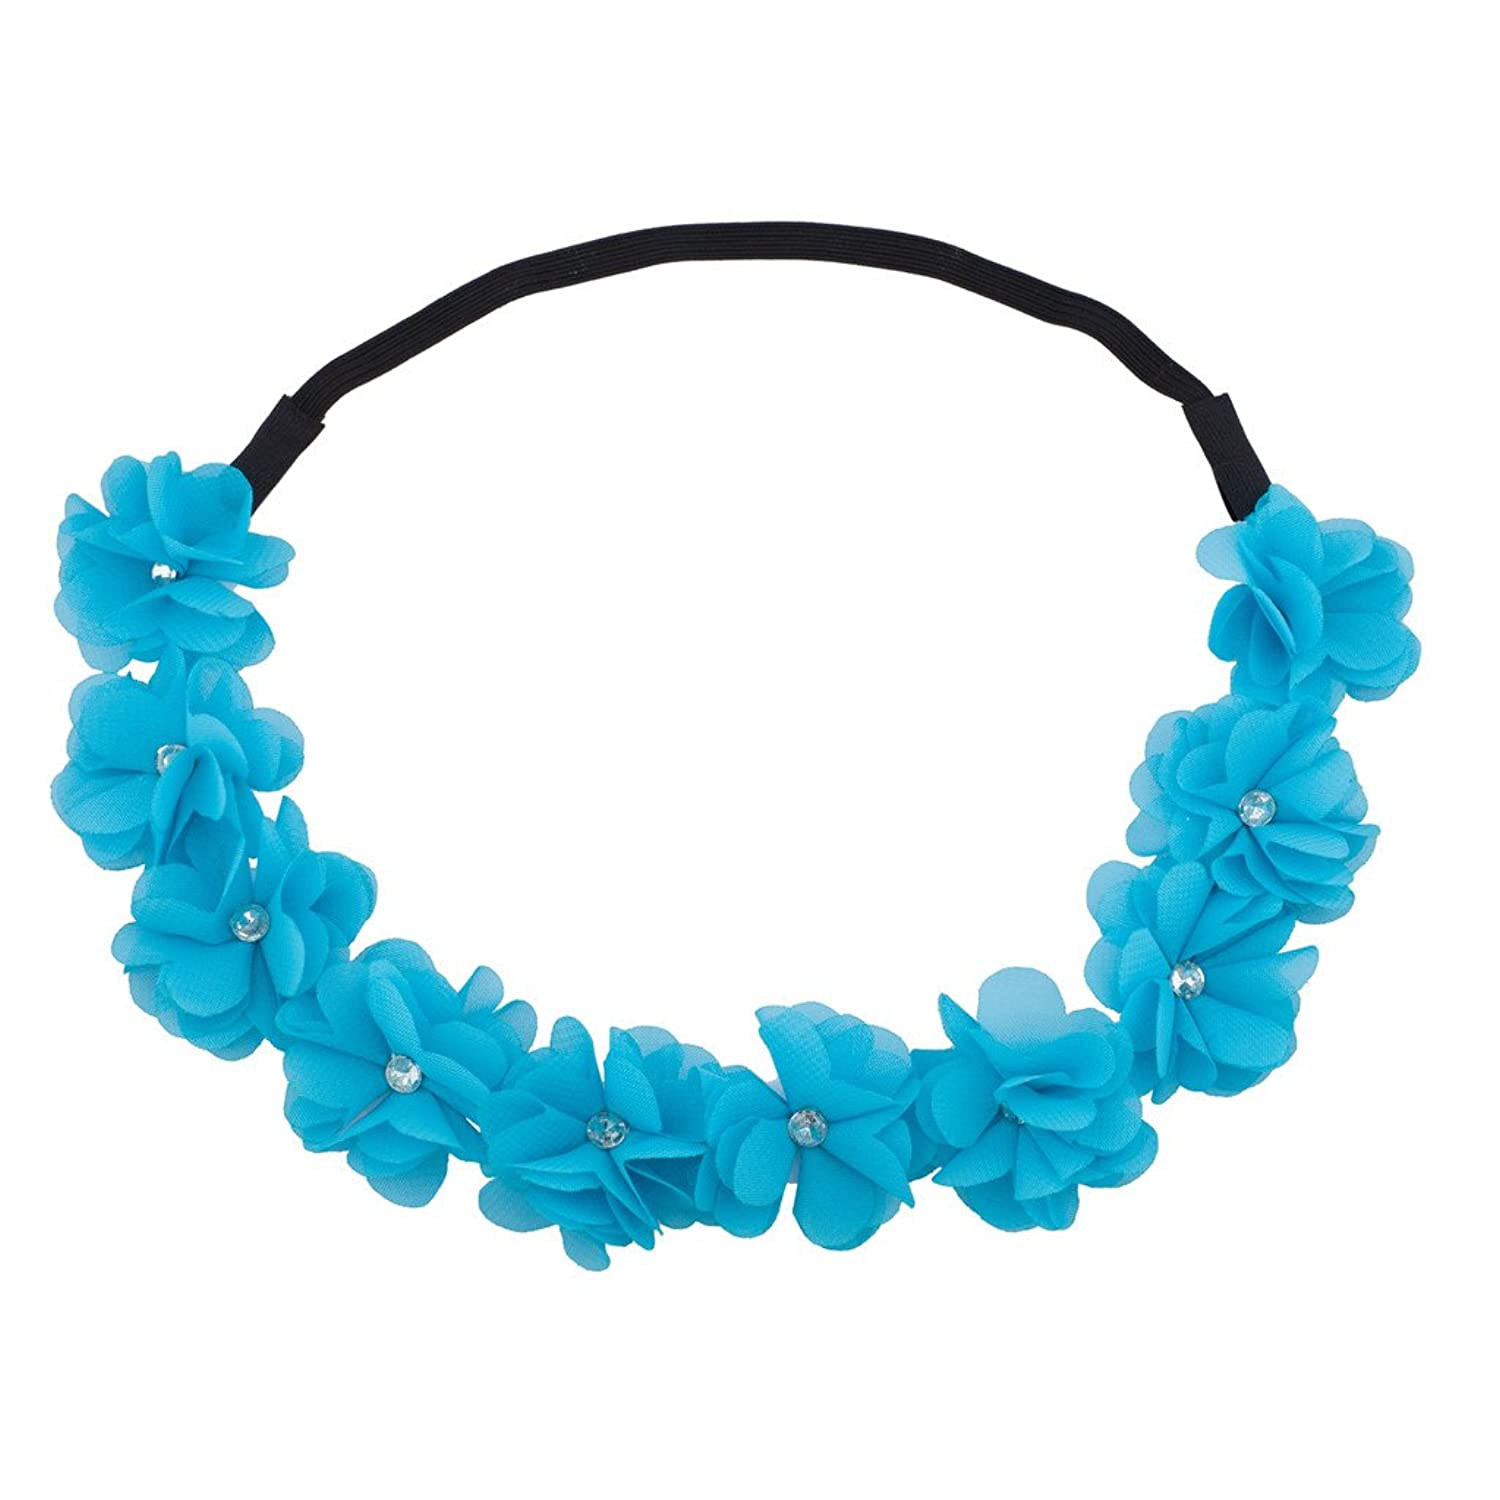 Lux Accessories Blue Floral Flower Crystal Stretch Headband Head Band